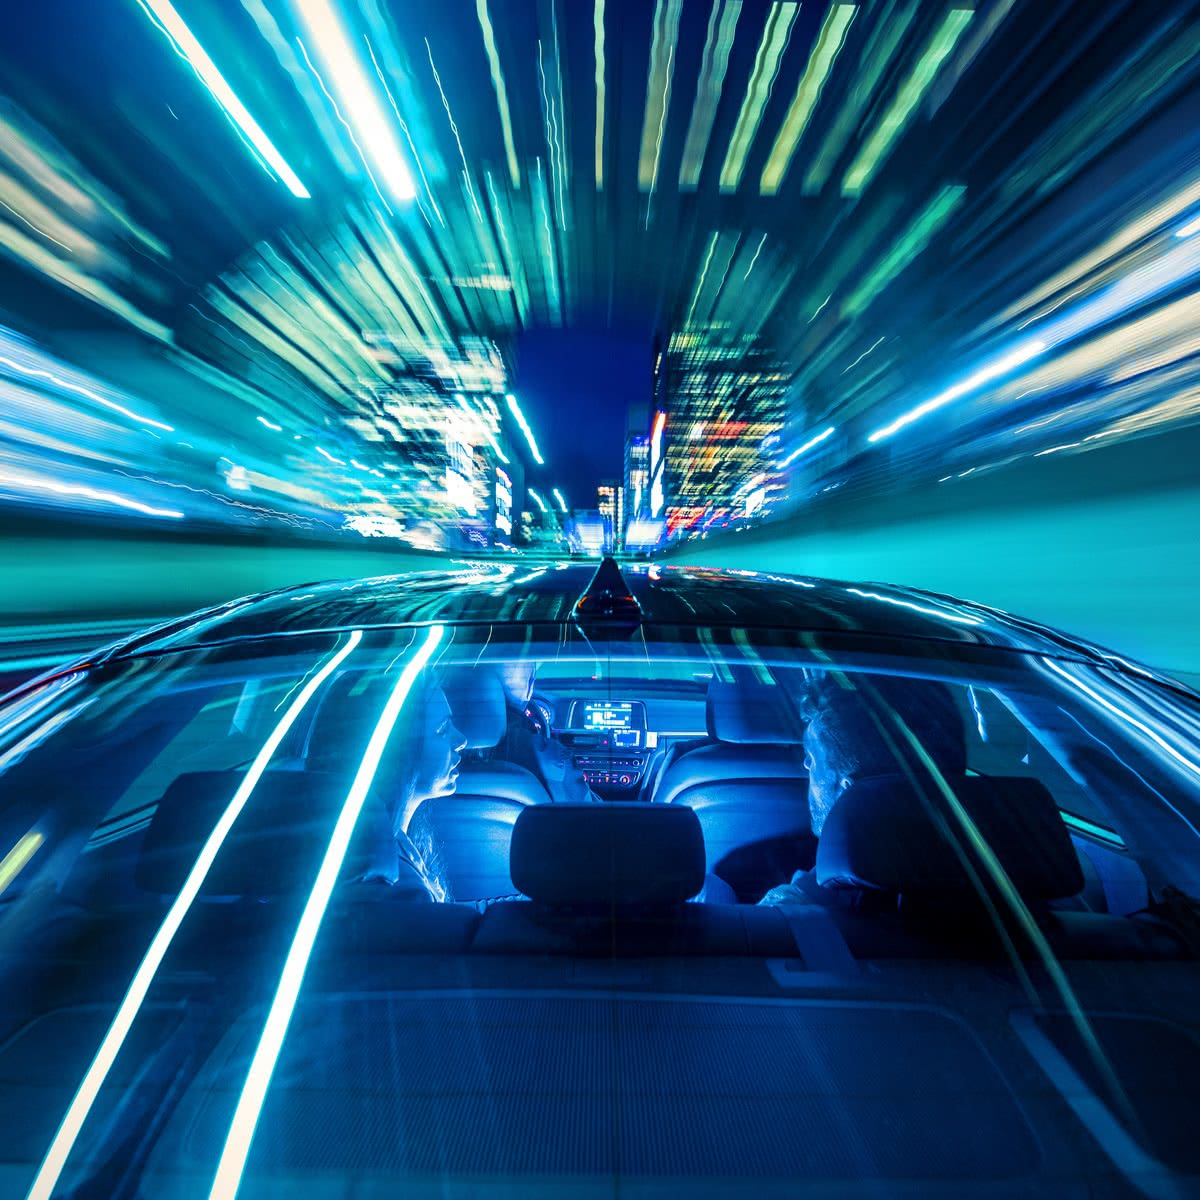 Future Mobility - automotive suppliers staying on course in a disruptive market